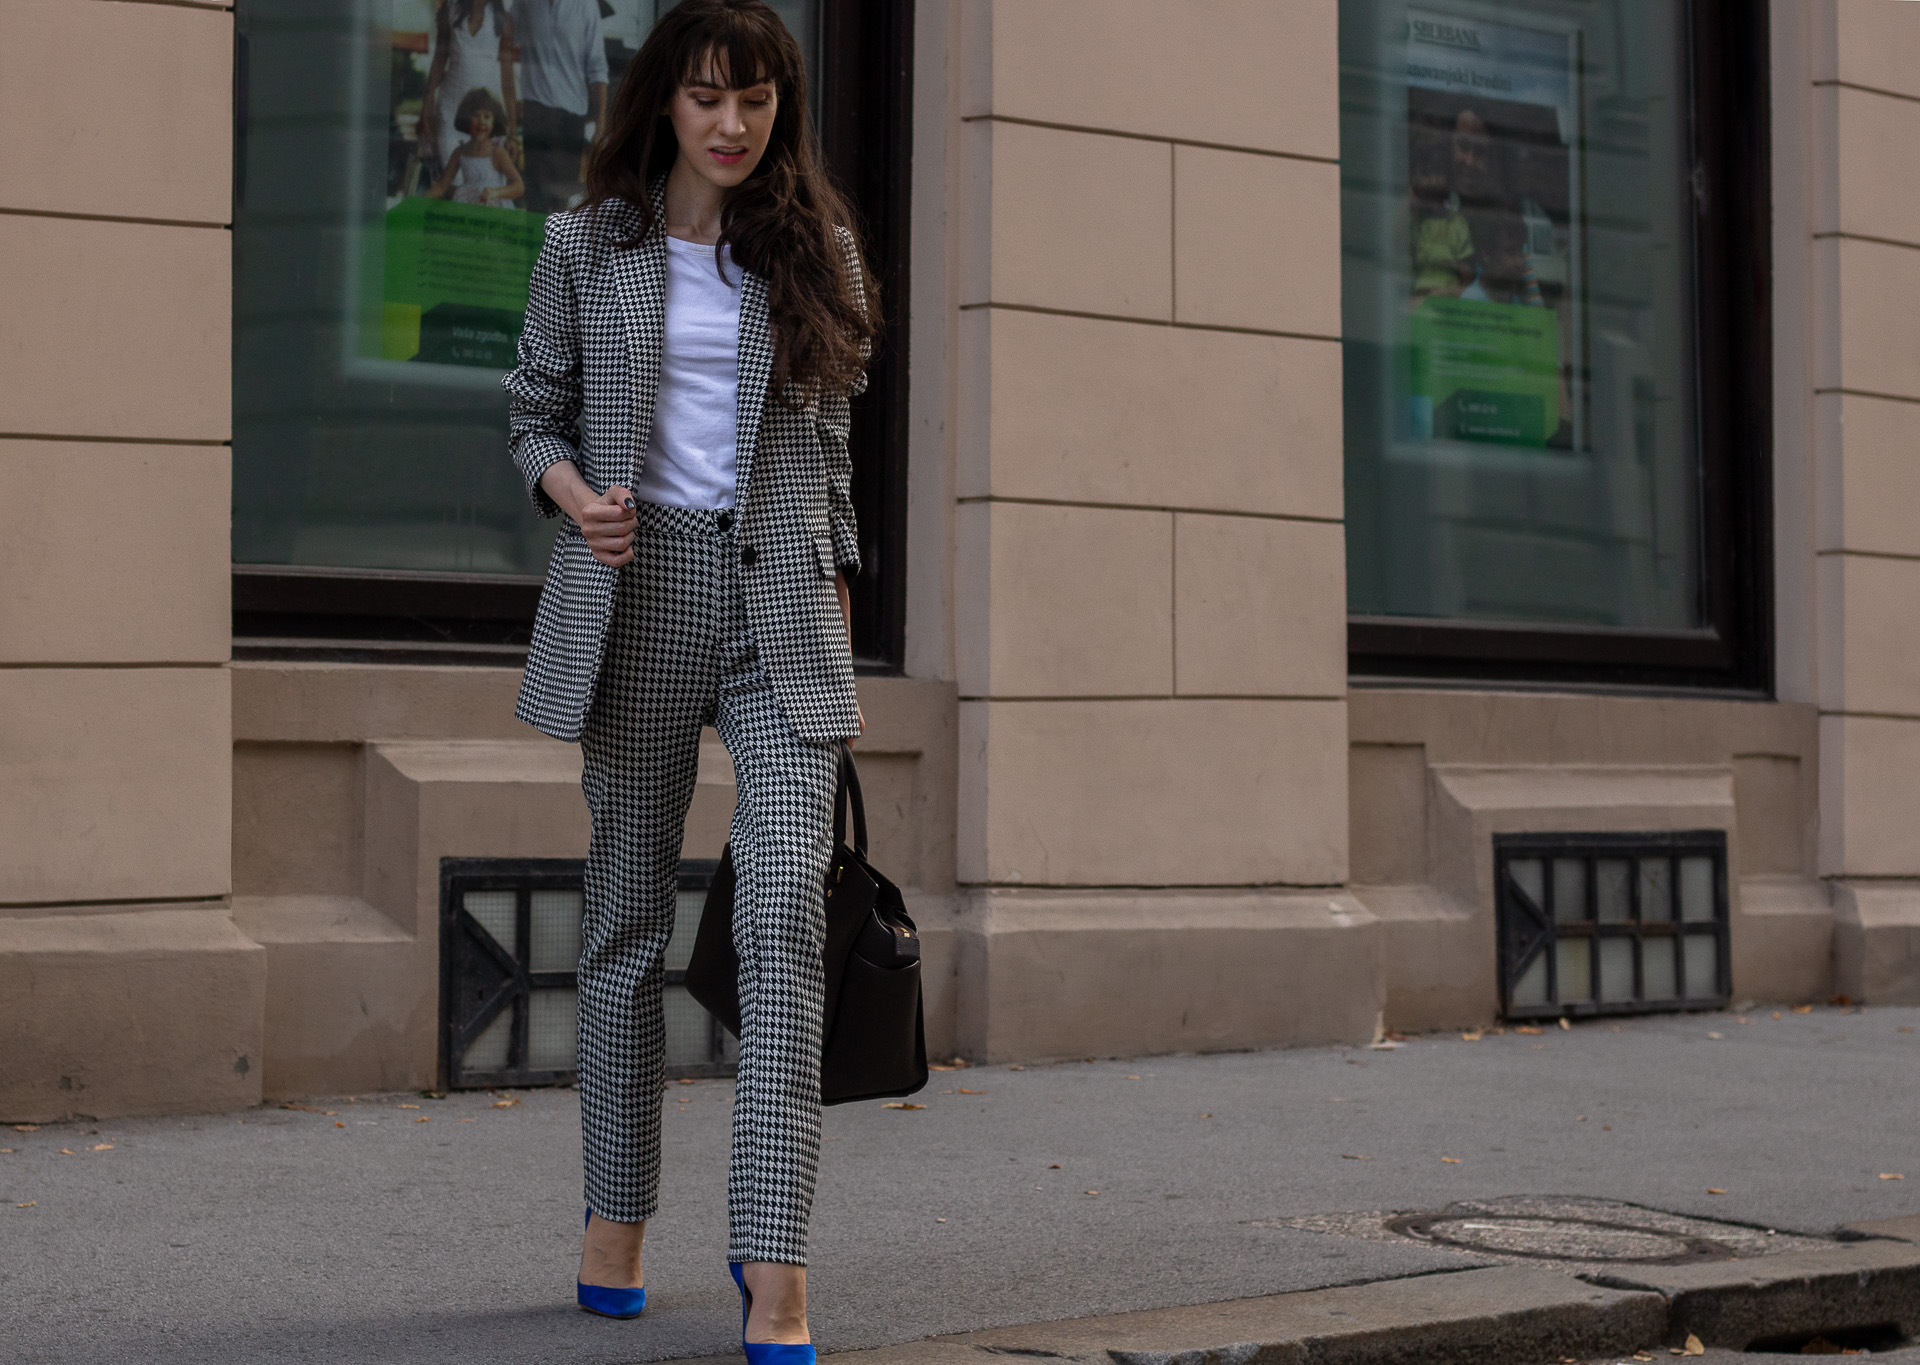 Fashion blogger Veronika Lipar of Brunette from Wall Street wearing white Sandro houndstooth tailored blazer European Culture houndstooth pants Michael Kors Selma bag blue Gianvito Rossi pumps for work in fall